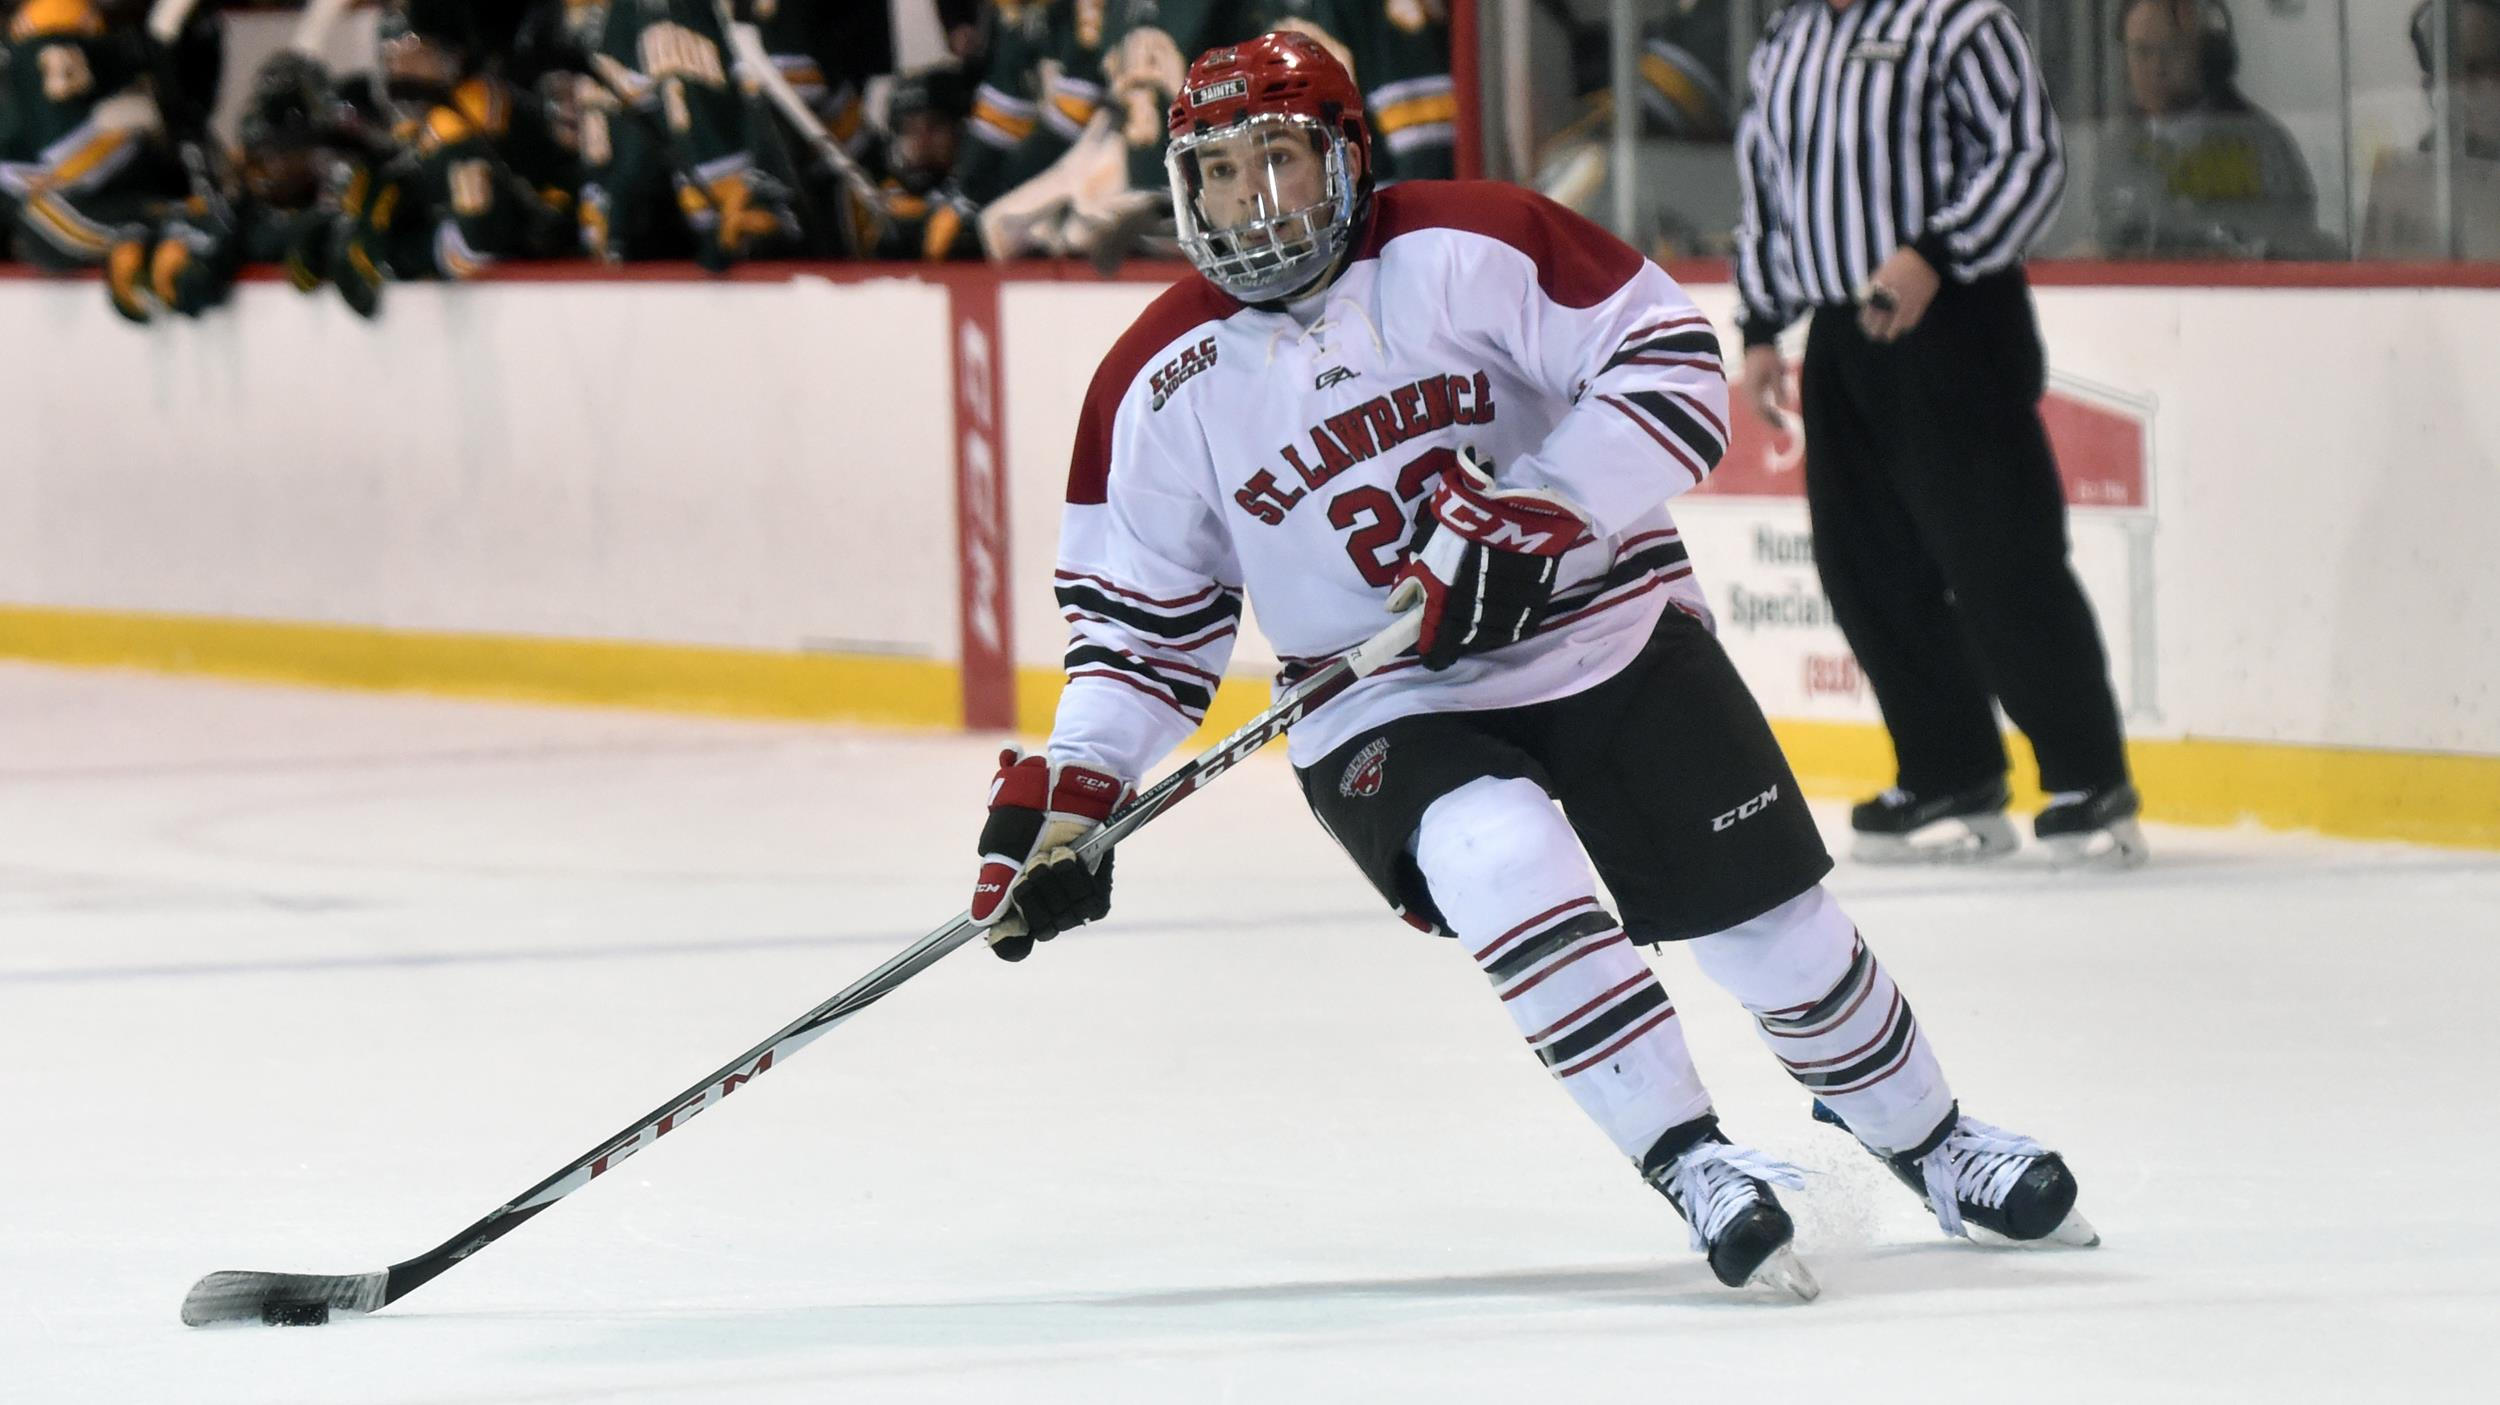 Image result for st lawrence hockey 2018